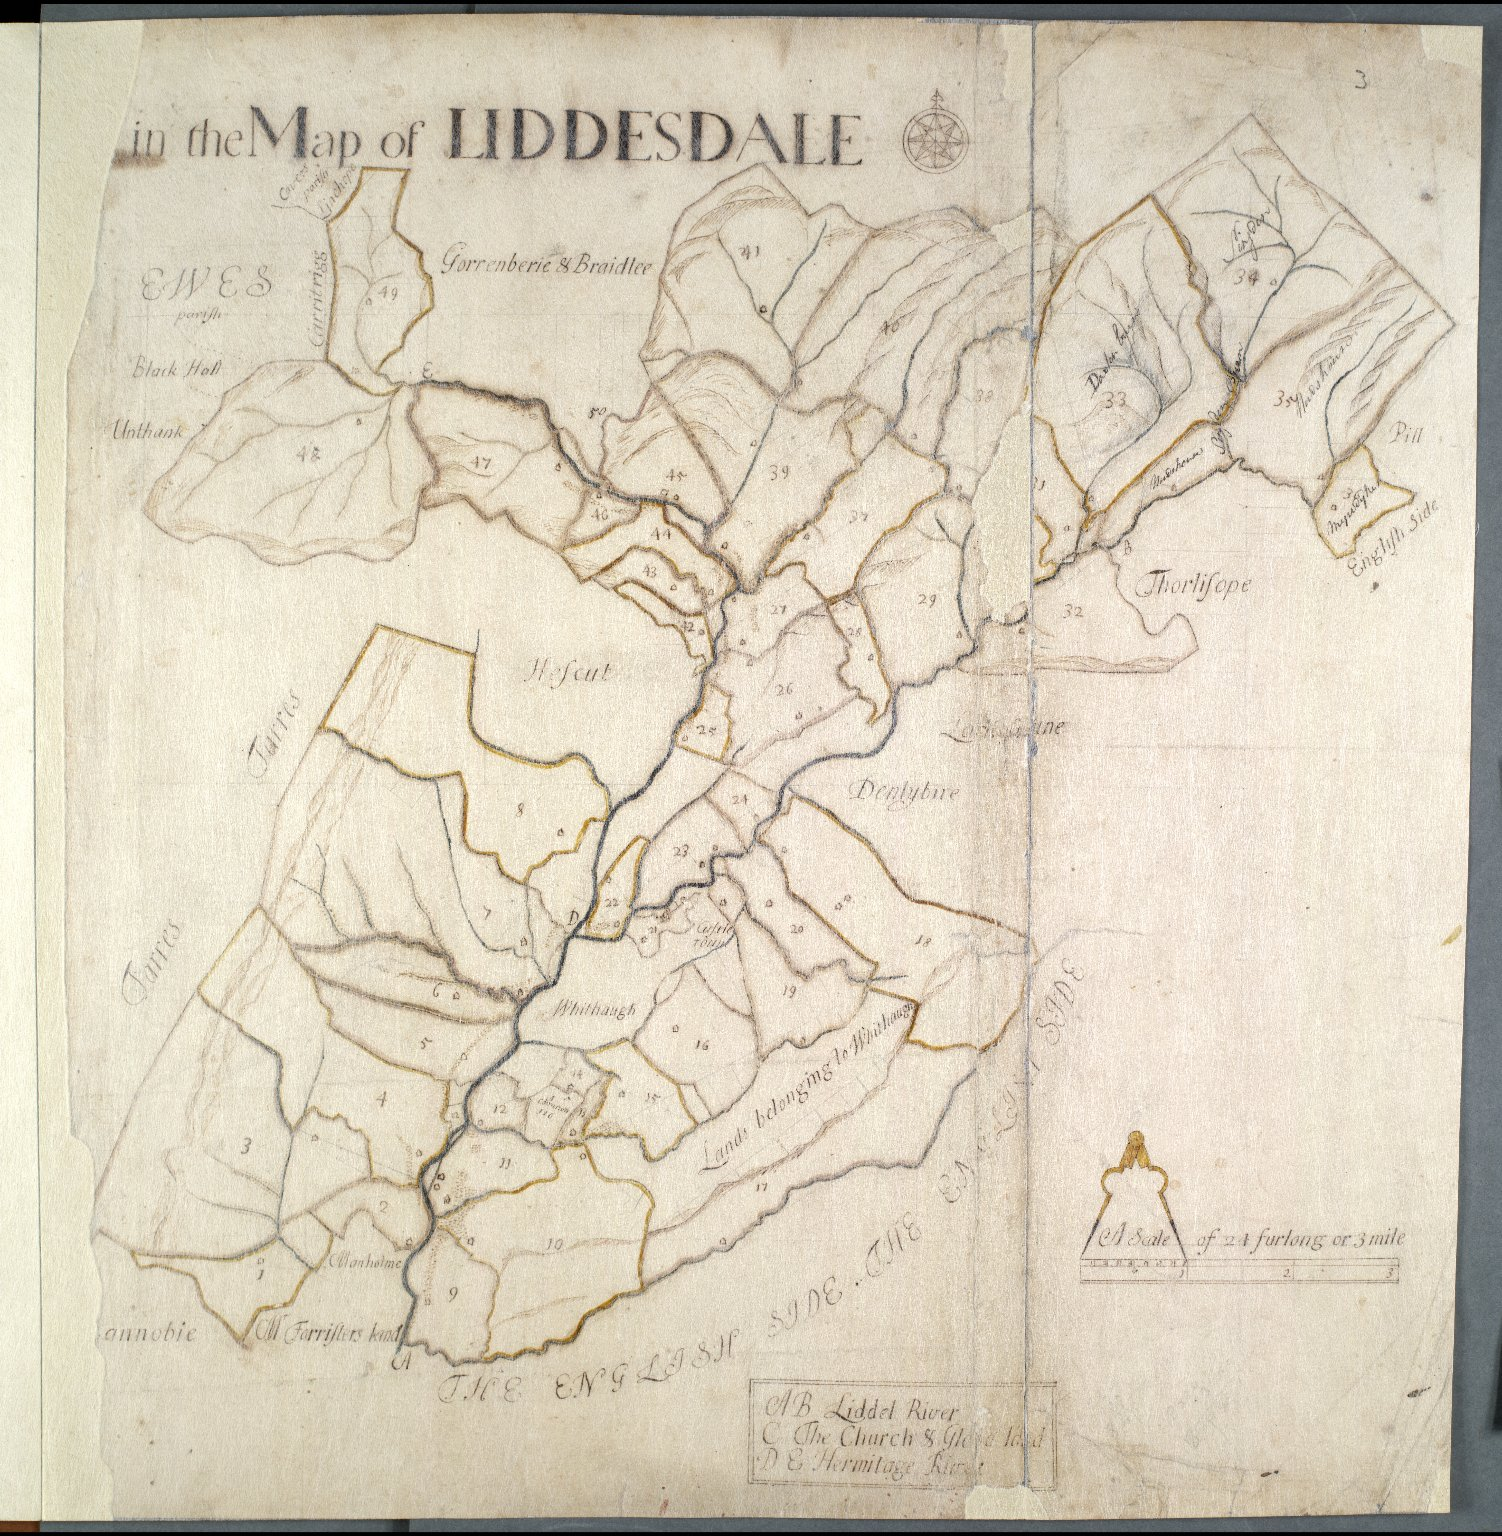 The number of acres in each farm in the map of Liddesdale [2 of 2]